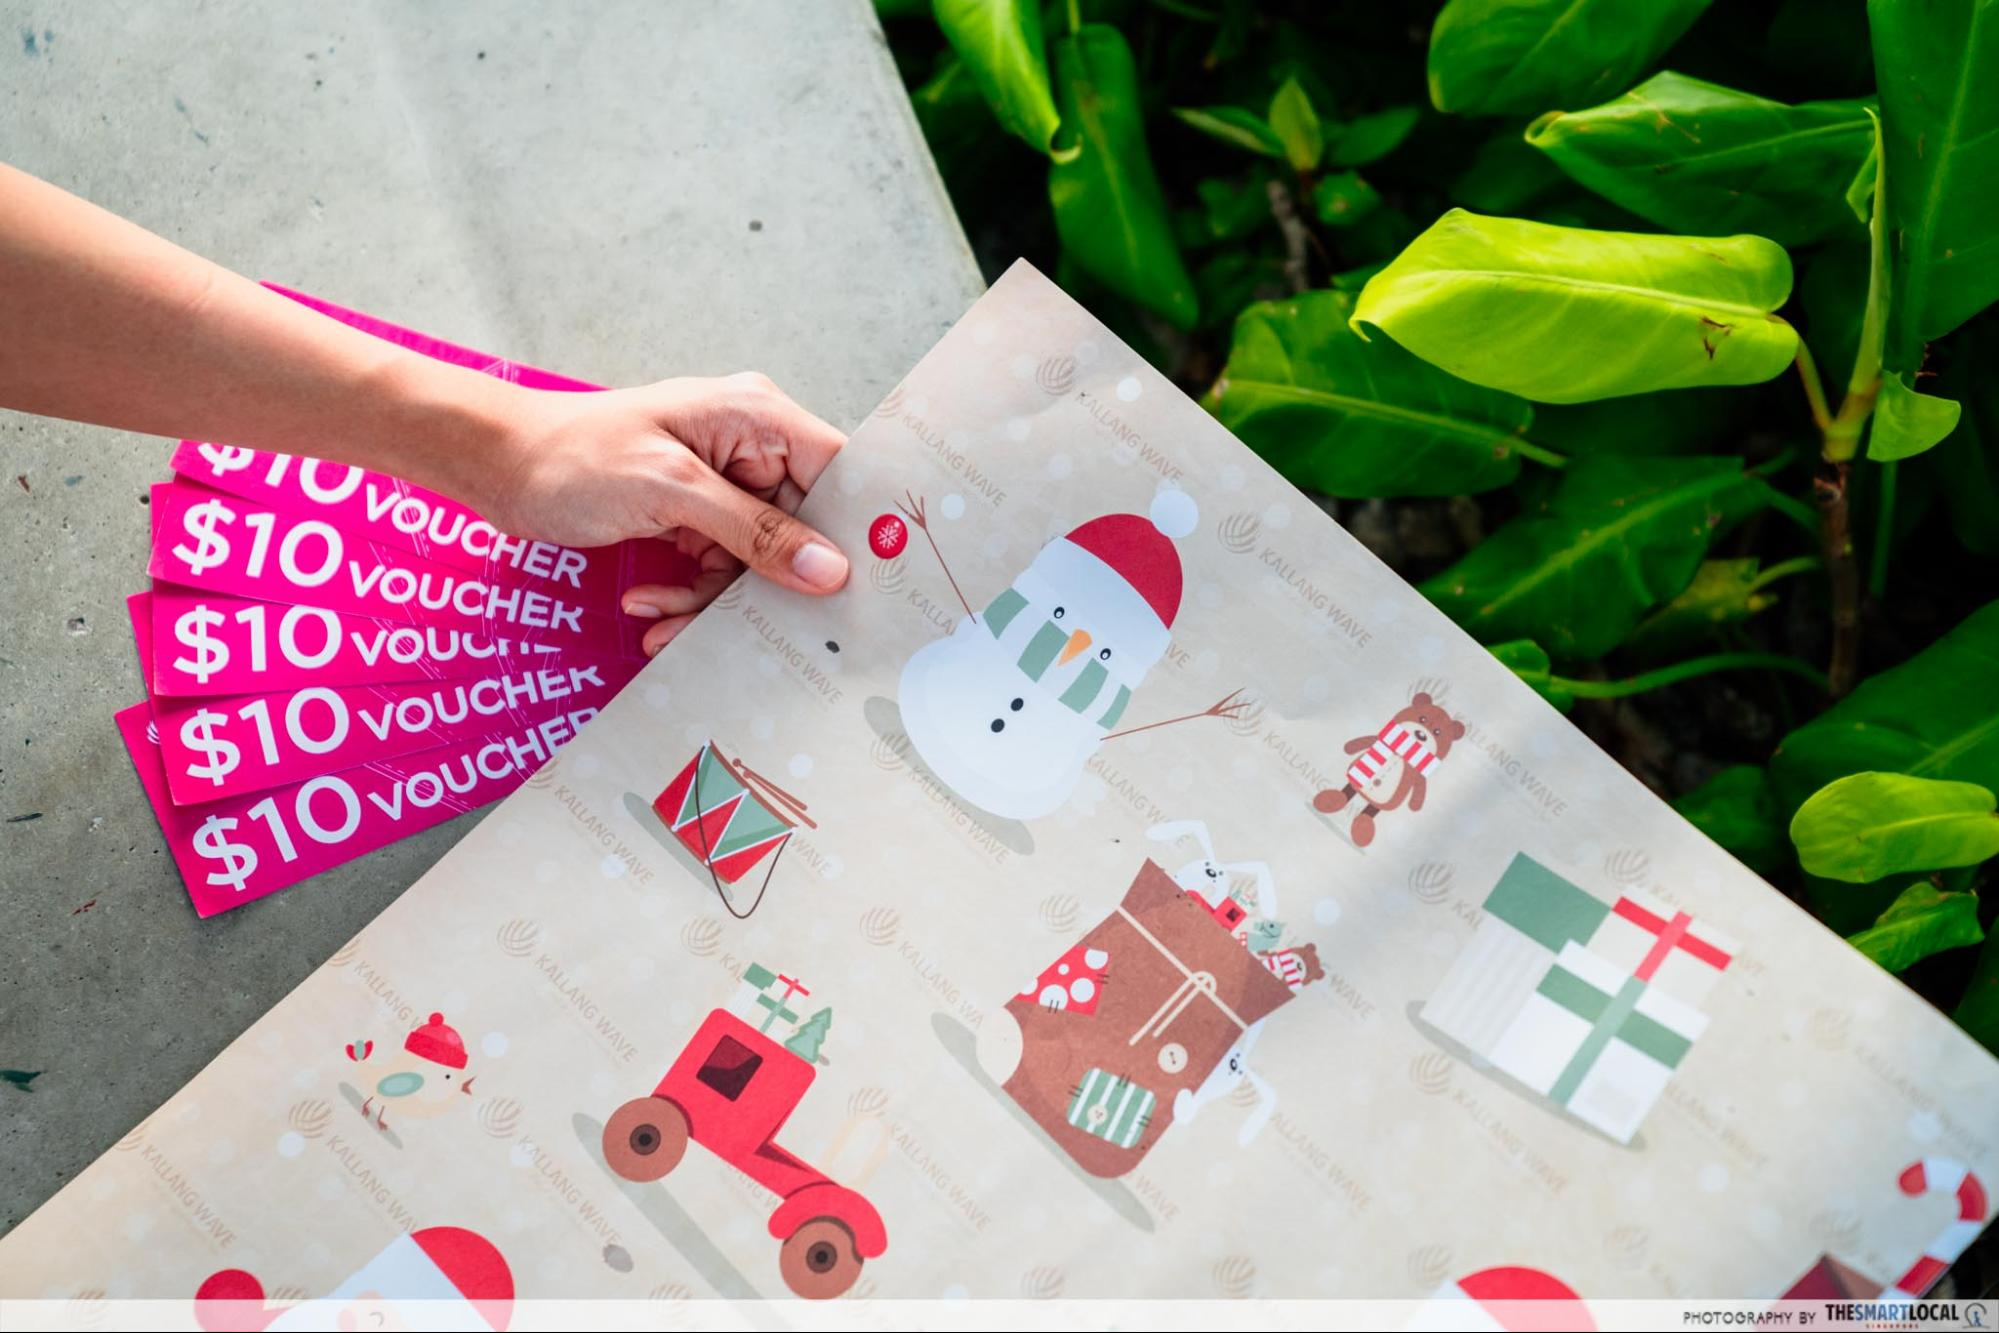 Kallang wave mall christmas 2020 - vouchers and gift wrappers